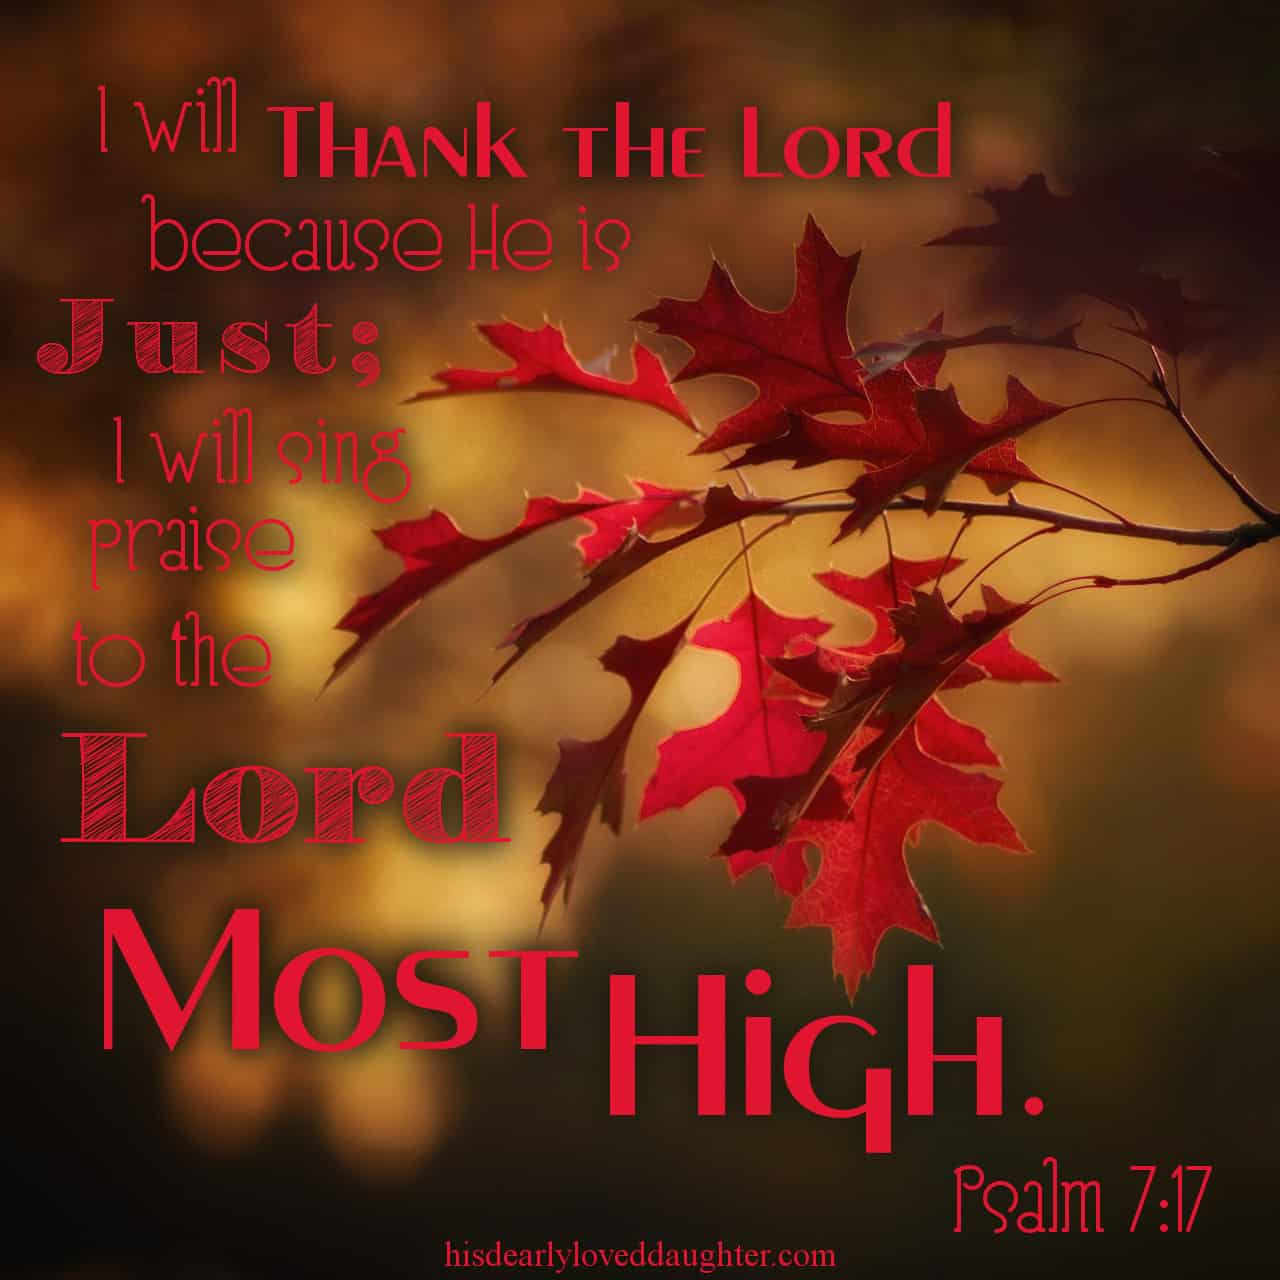 I will thank the Lord because He is just; I will sing praise to the name of the Lord Most High. Psalms 7:17